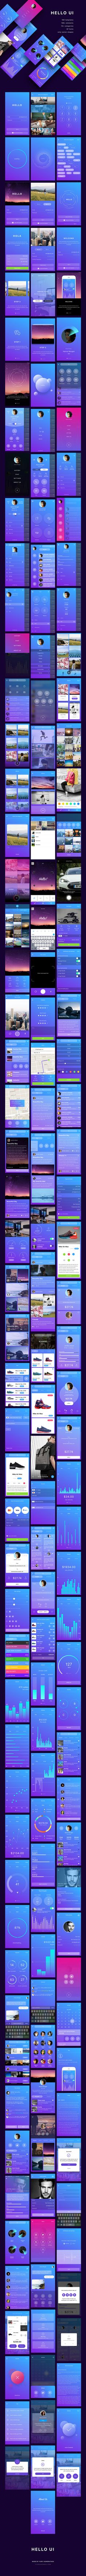 Hello UI Kit on Behance